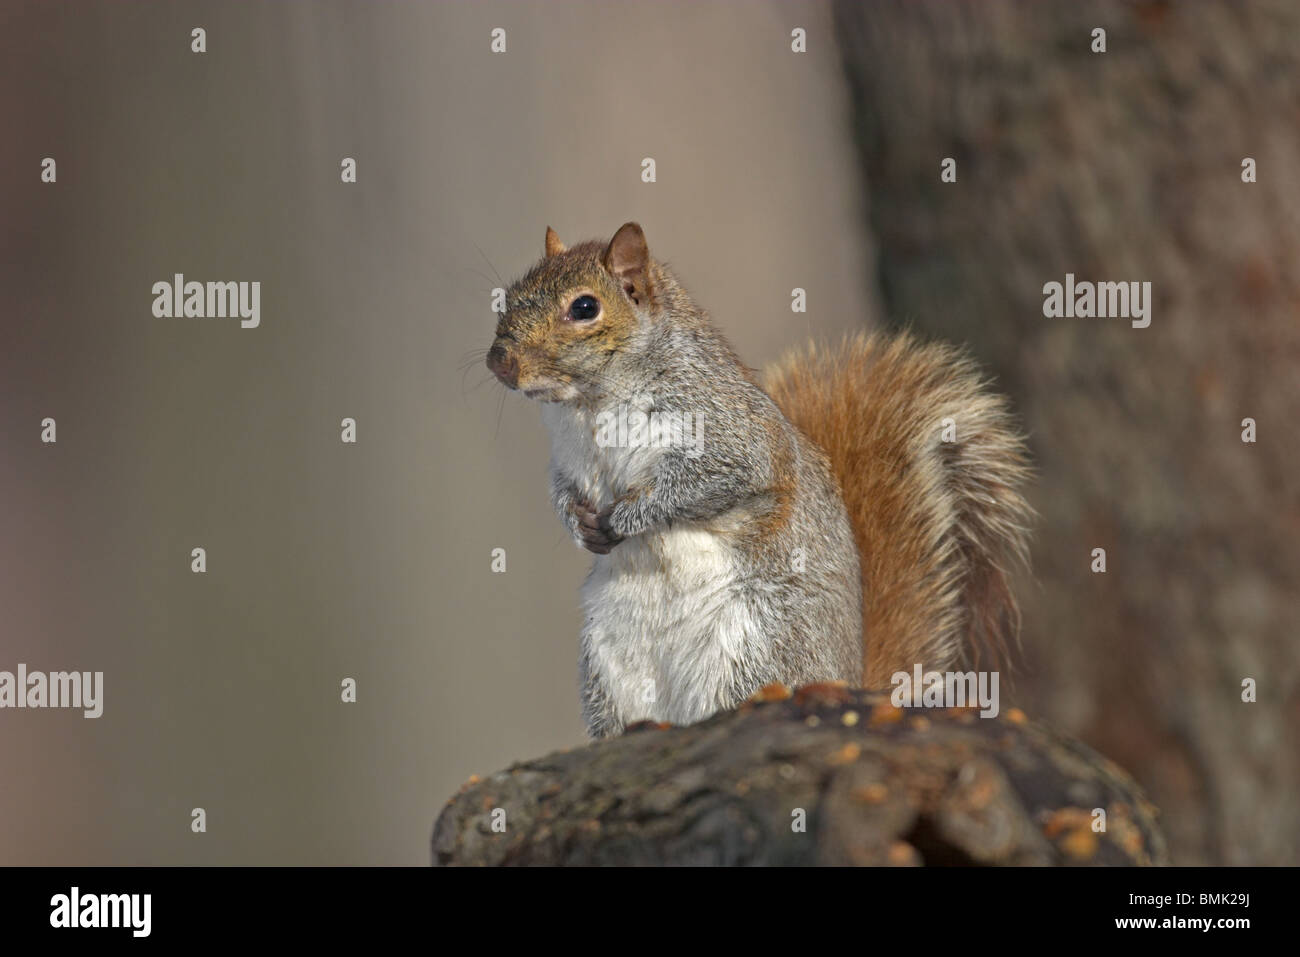 Eastern Gray Squirrel perched in a tree - Stock Image